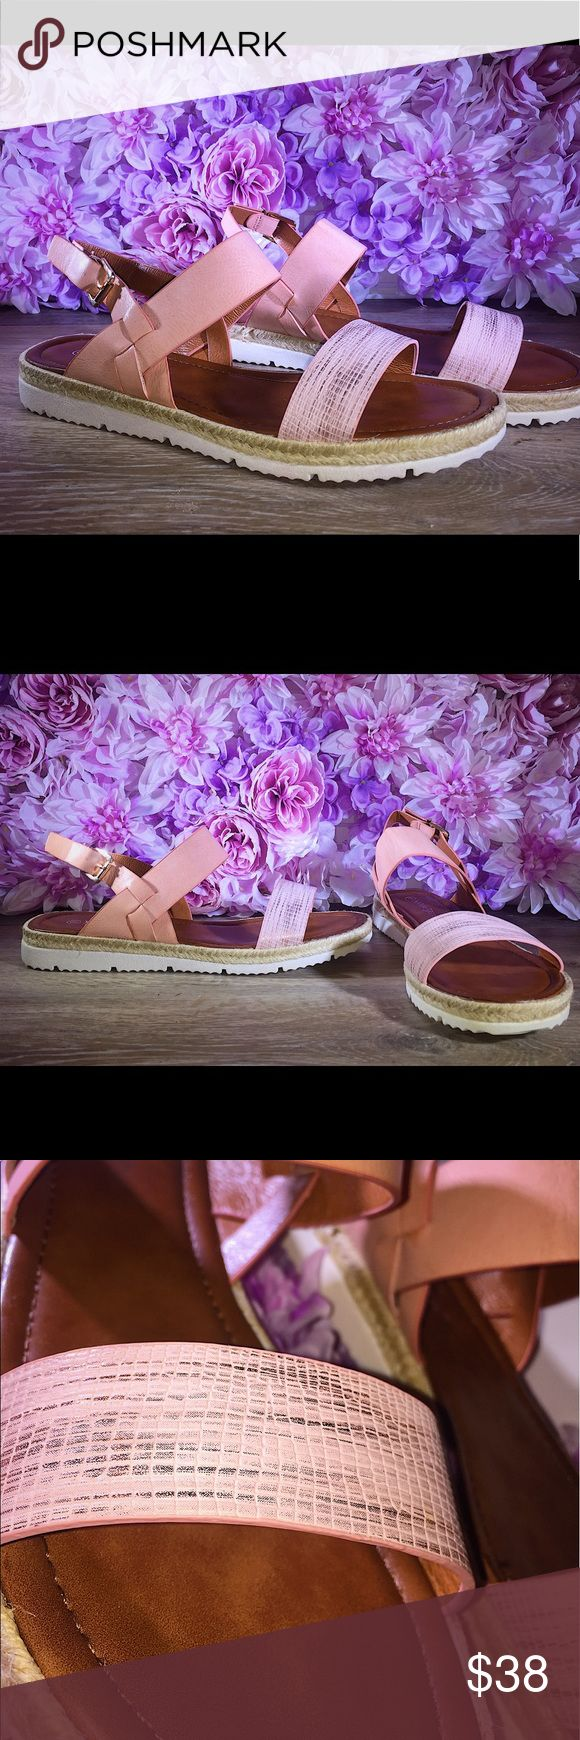 💕Pink trendy sandals Chic comfortable sandals ! Pair with your favorite casual day look😍 Shoes Sandals